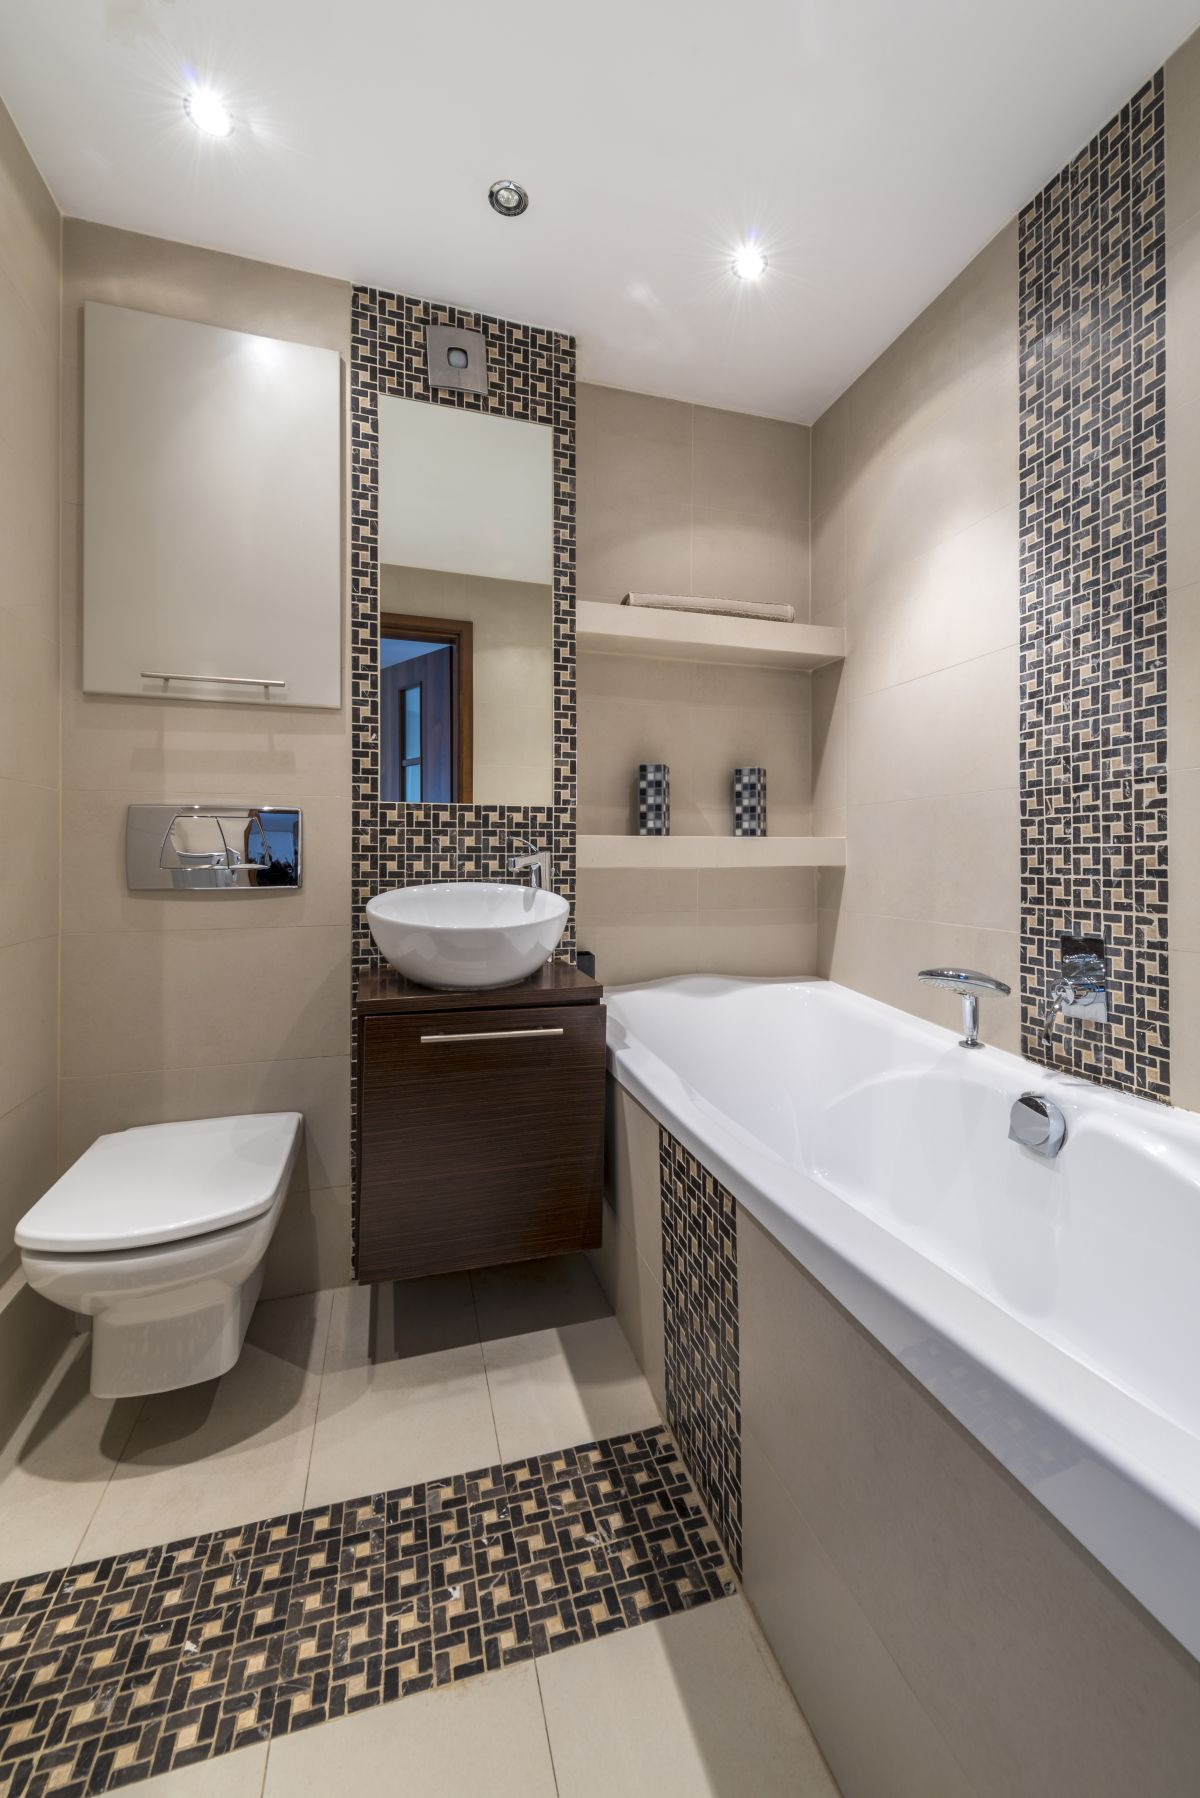 Size matters bathroom renovation costs for your size bath for Bath remodel for small bathrooms